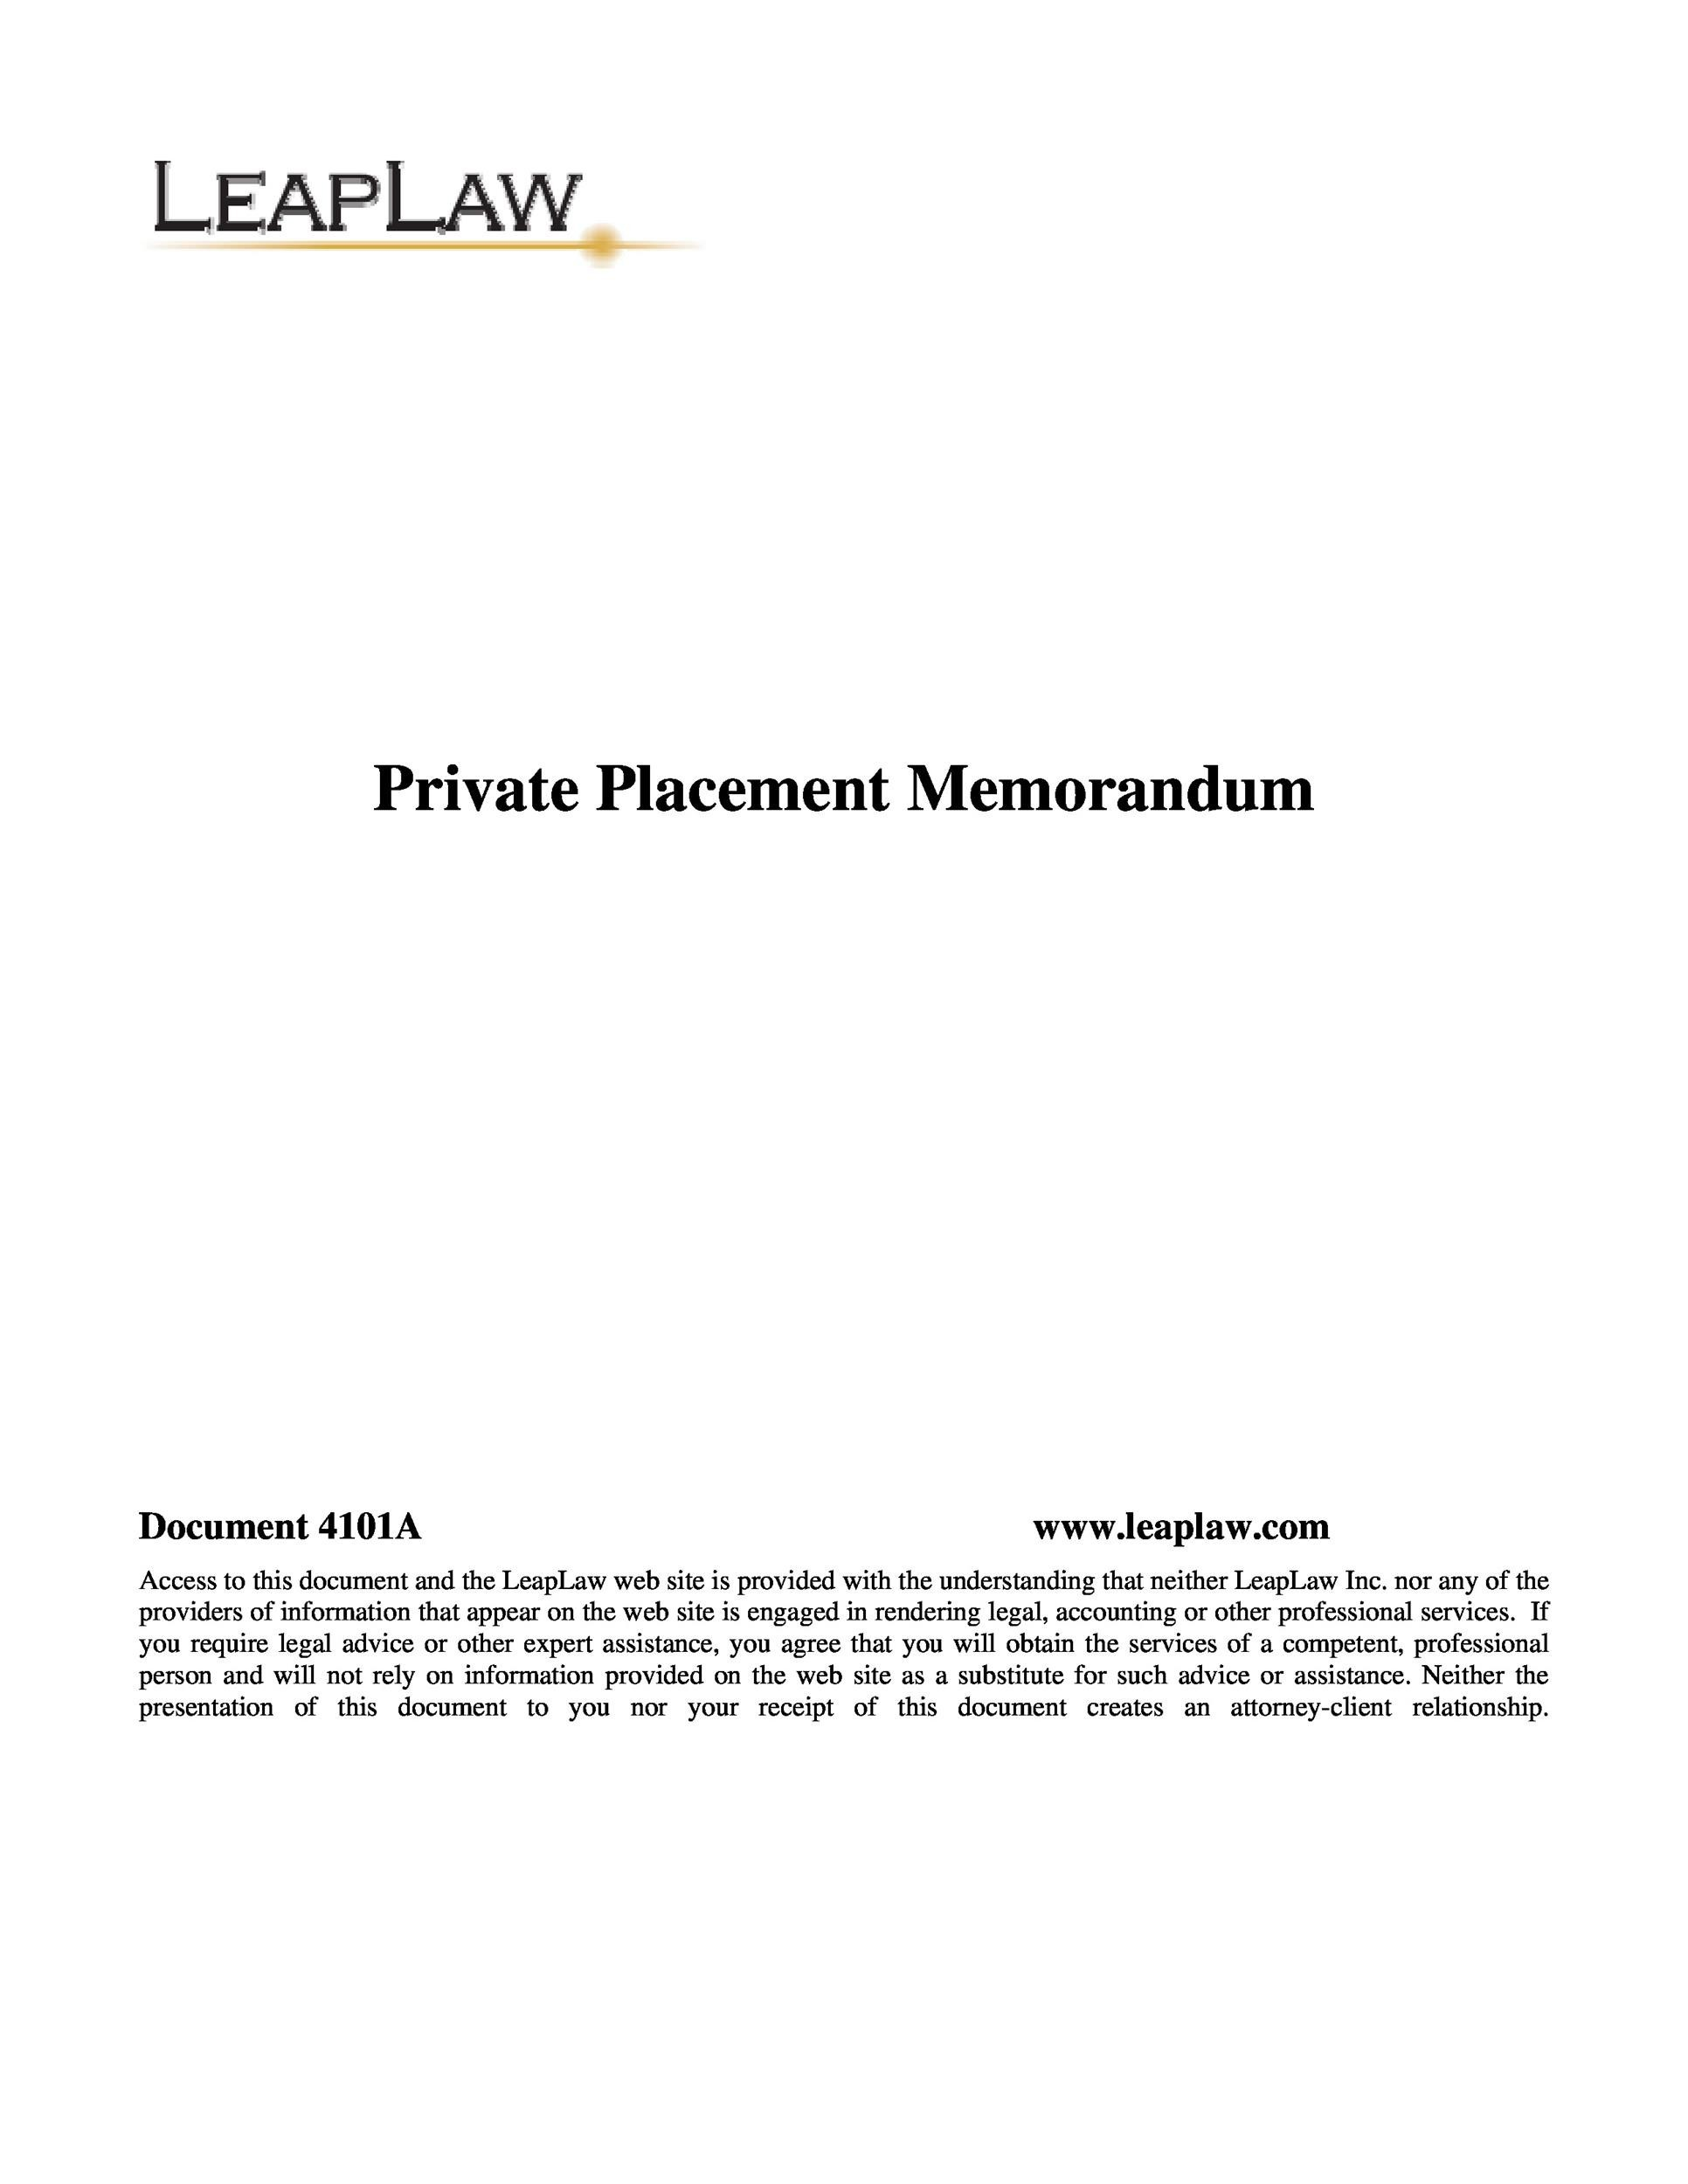 Private Placement Memorandum Templates Word Pdf